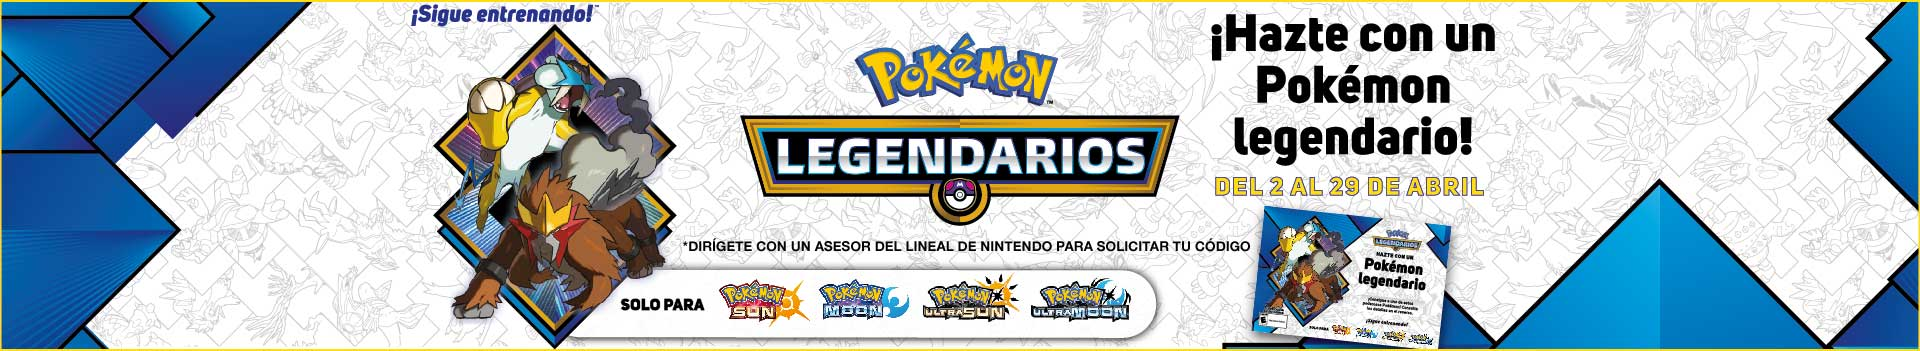 CAT-AK-KT-12-videojuegos-codigo-pokemon-cat-abril1/29